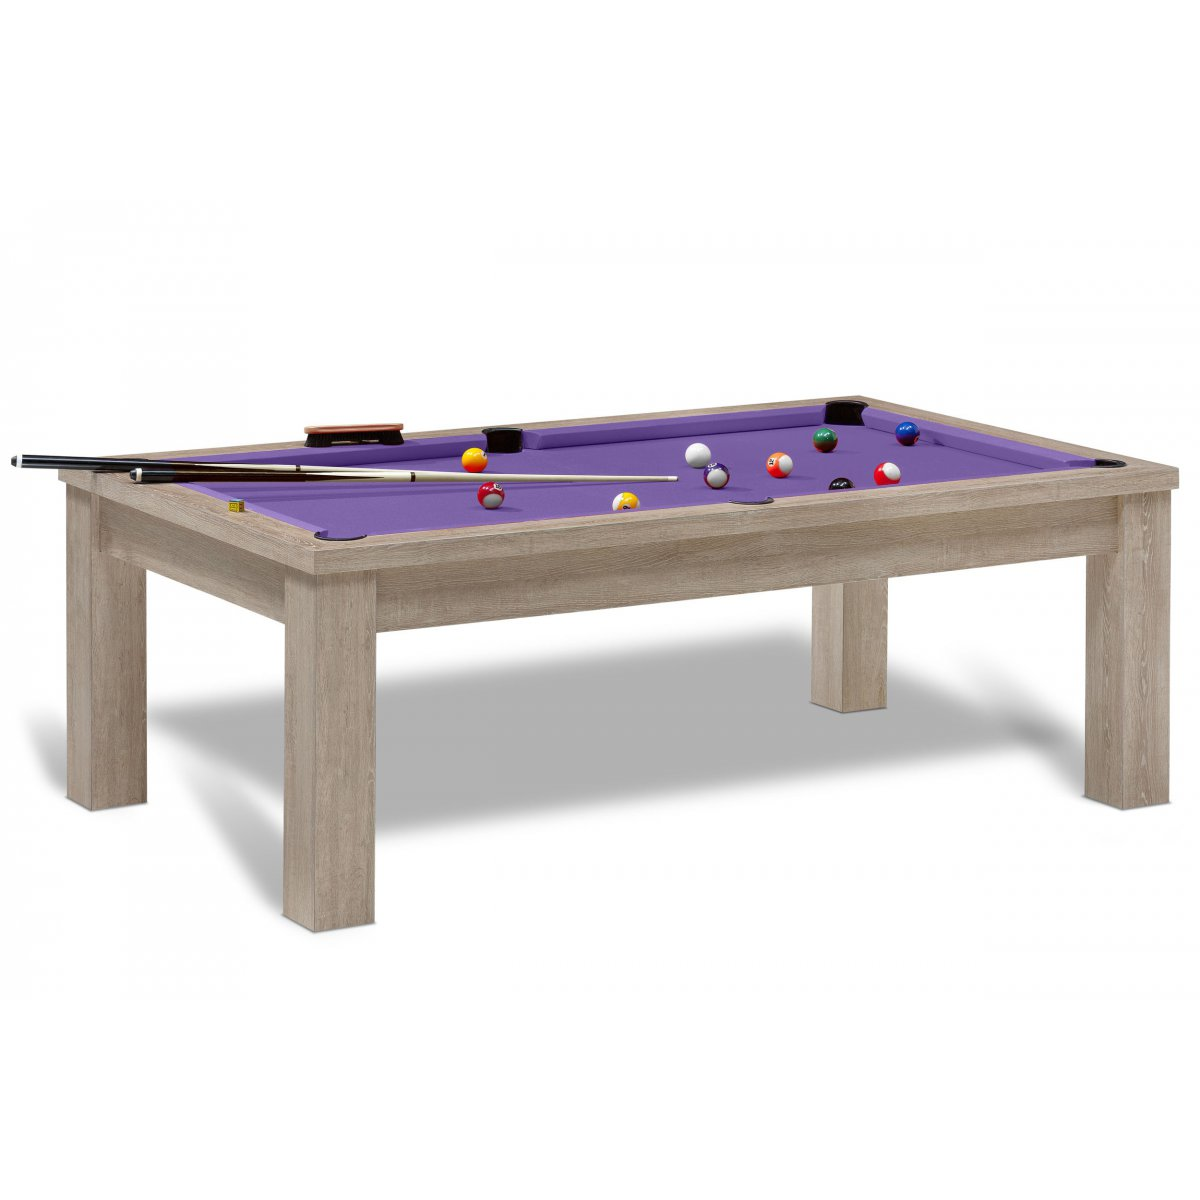 Billard am ricain billard table personnalisable jeux us - Billard convertible table ...